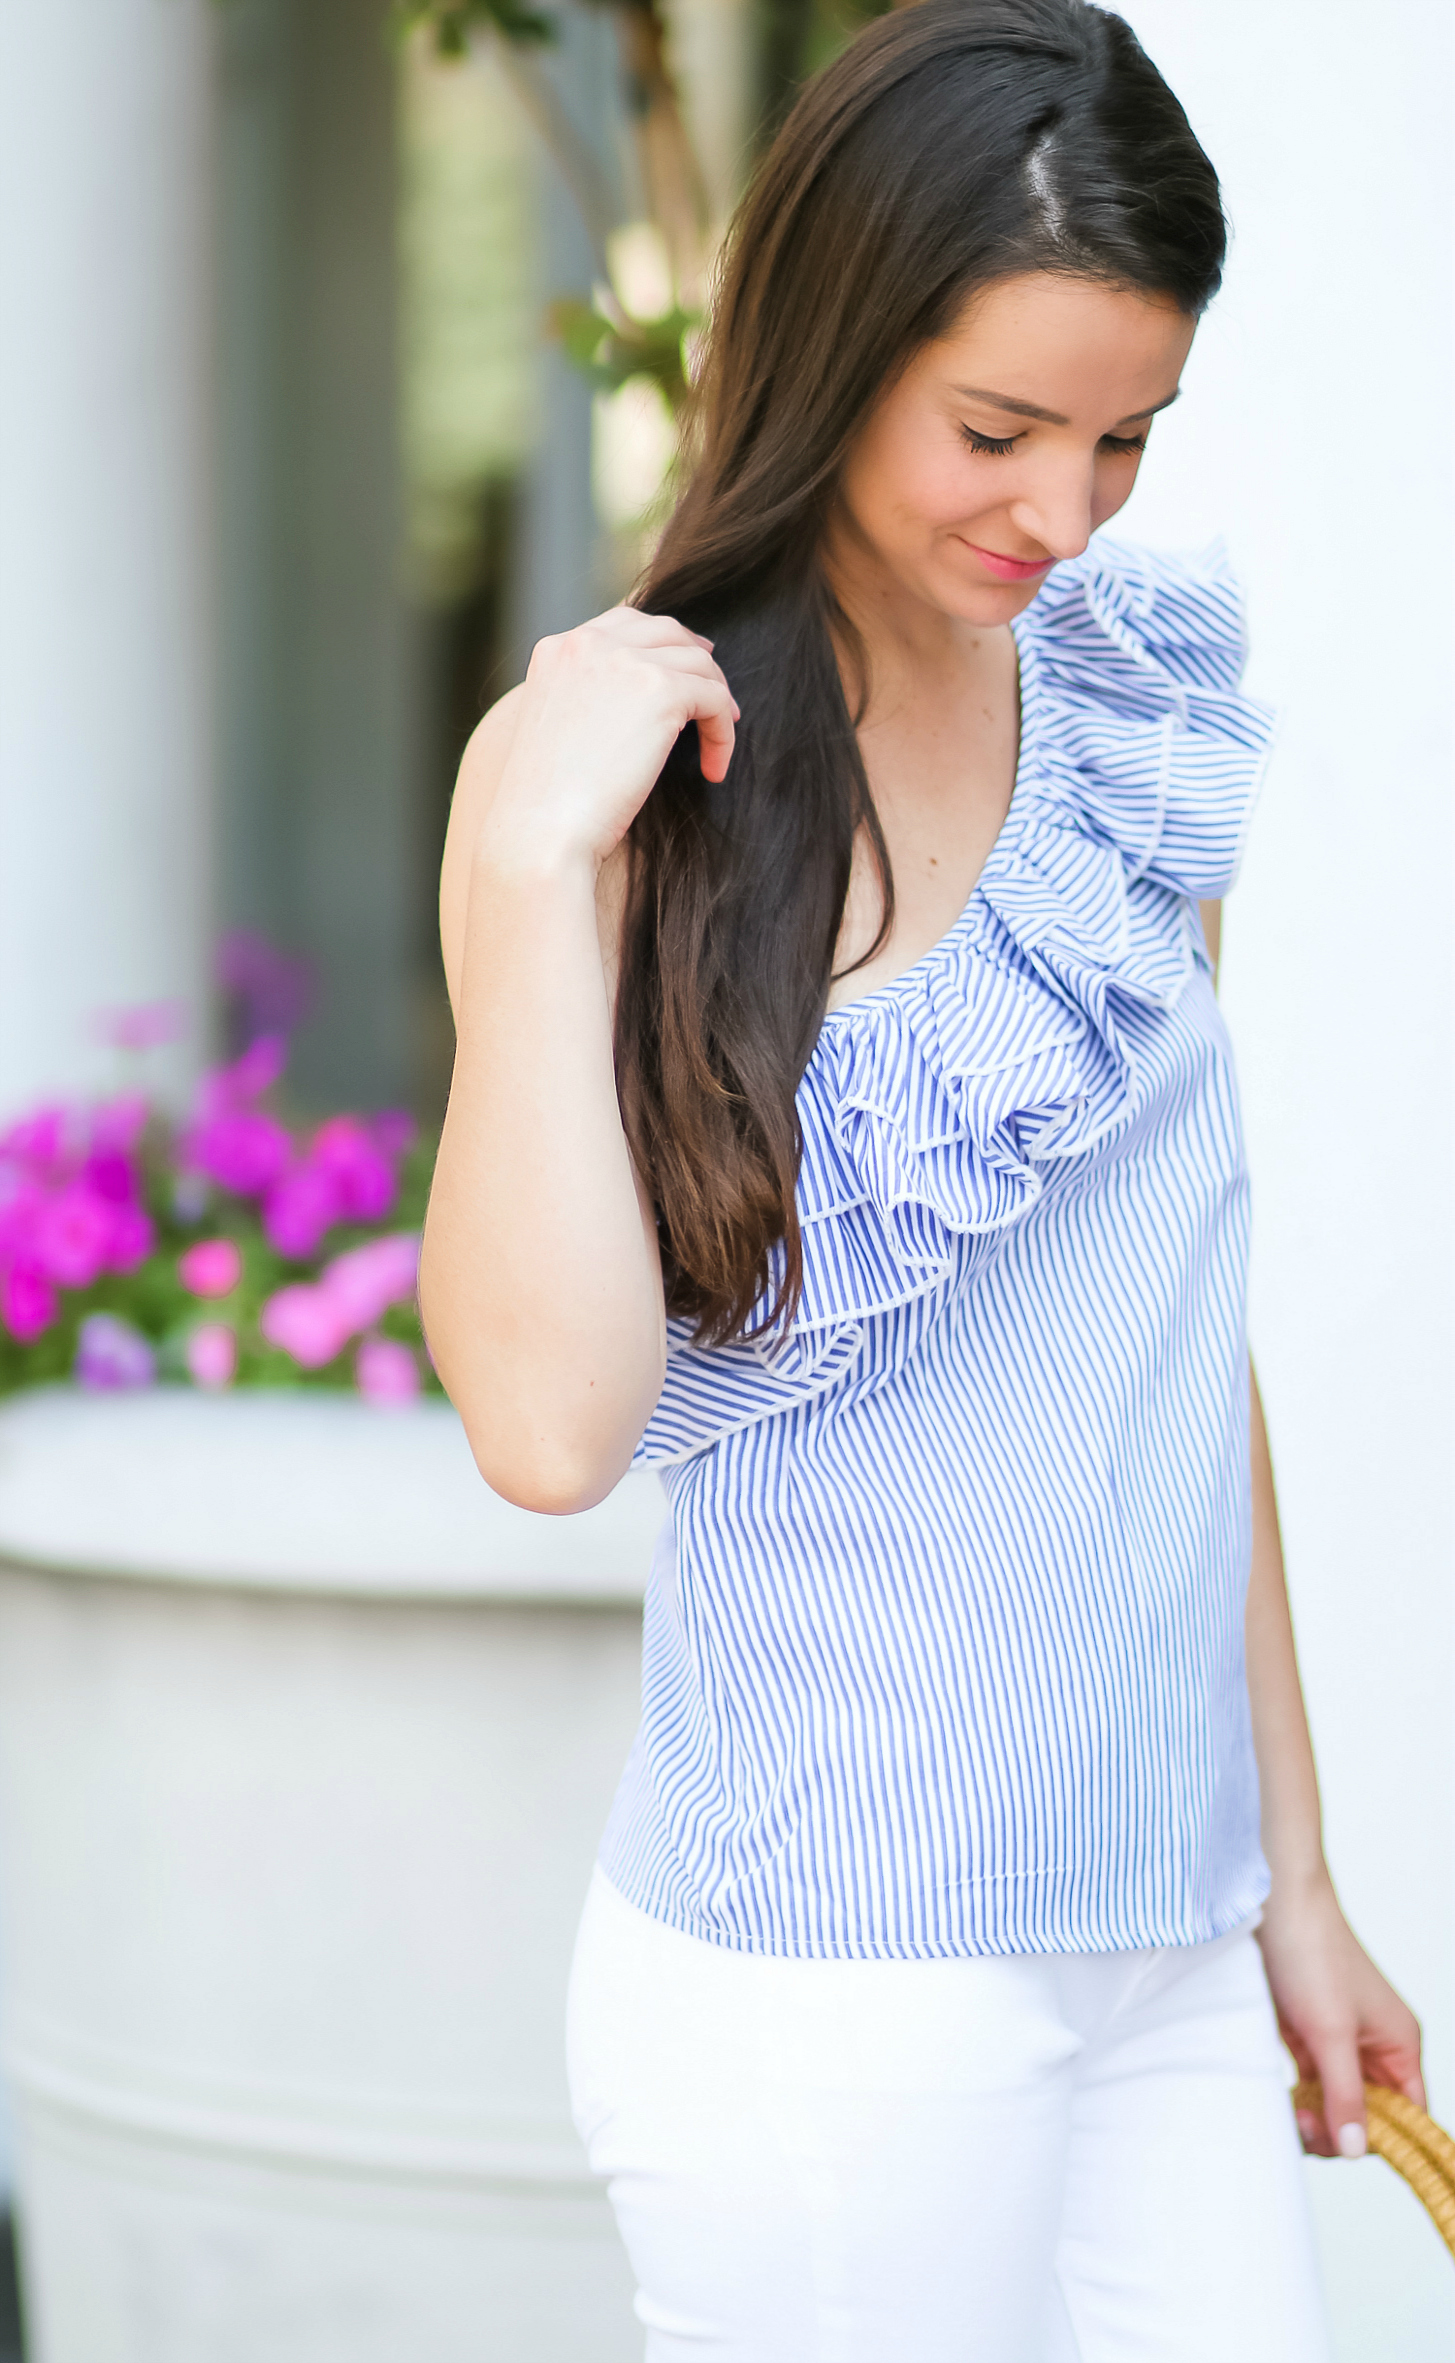 How to keep white clothes white for longer with CLOROX | Casual summer outfit (Shein one-shoulder stripped ruffle top and white jeans) by fashion blogger Stephanie Ziajka from Diary of a Debutante